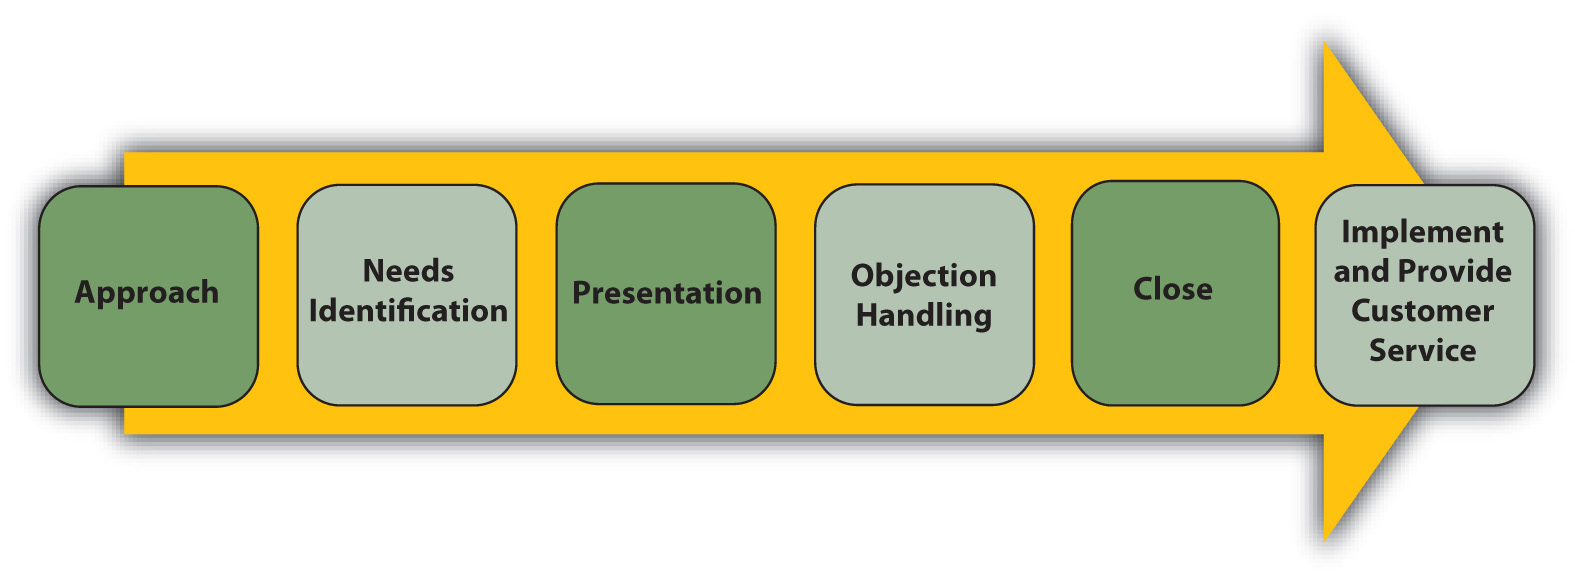 The Typical sales process starts with an approach to the identification of needs to presentation to objection handling to closing and finally to implementing and providing customer service